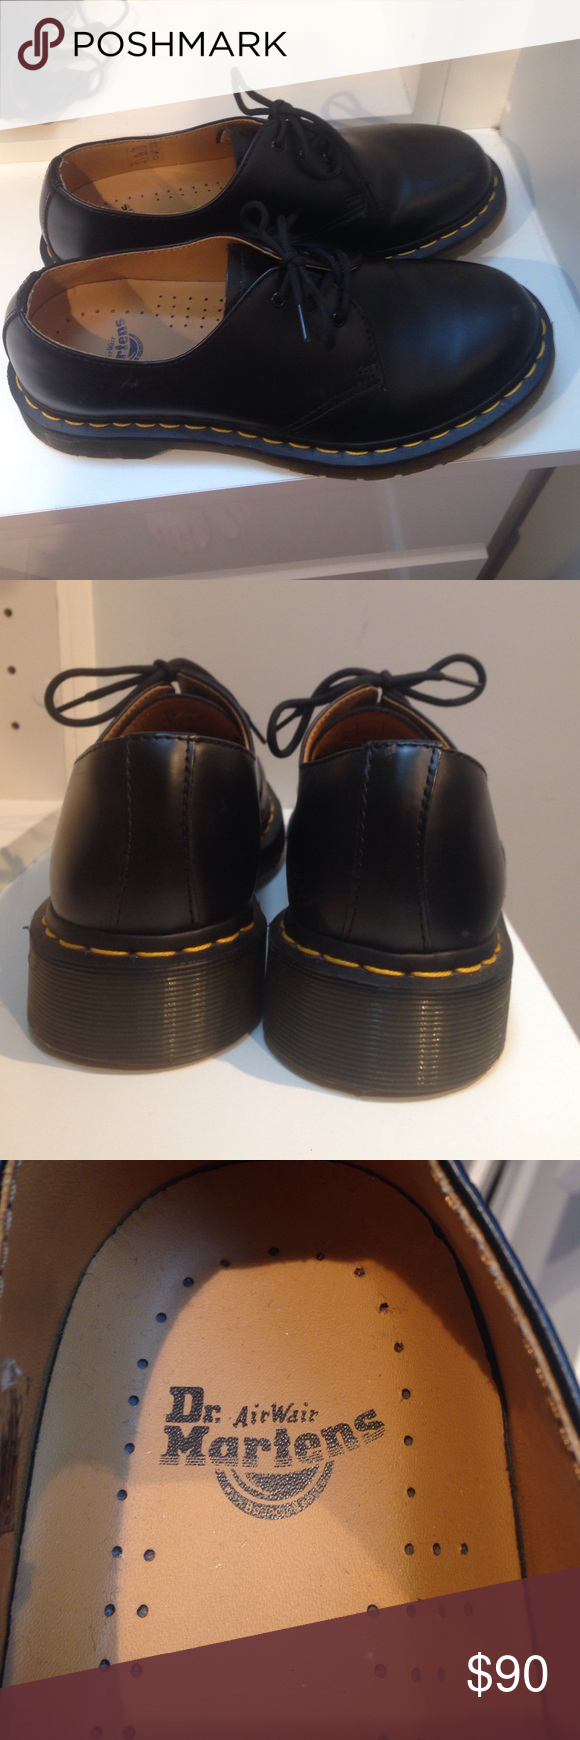 Shoes - Black Dr. Martens, they were used and have a few small scuffs but nothing too noticeable, stitching is perfect, there is yellow stitching at the bottom, and they have a small platform Dr. Martens Shoes Platforms